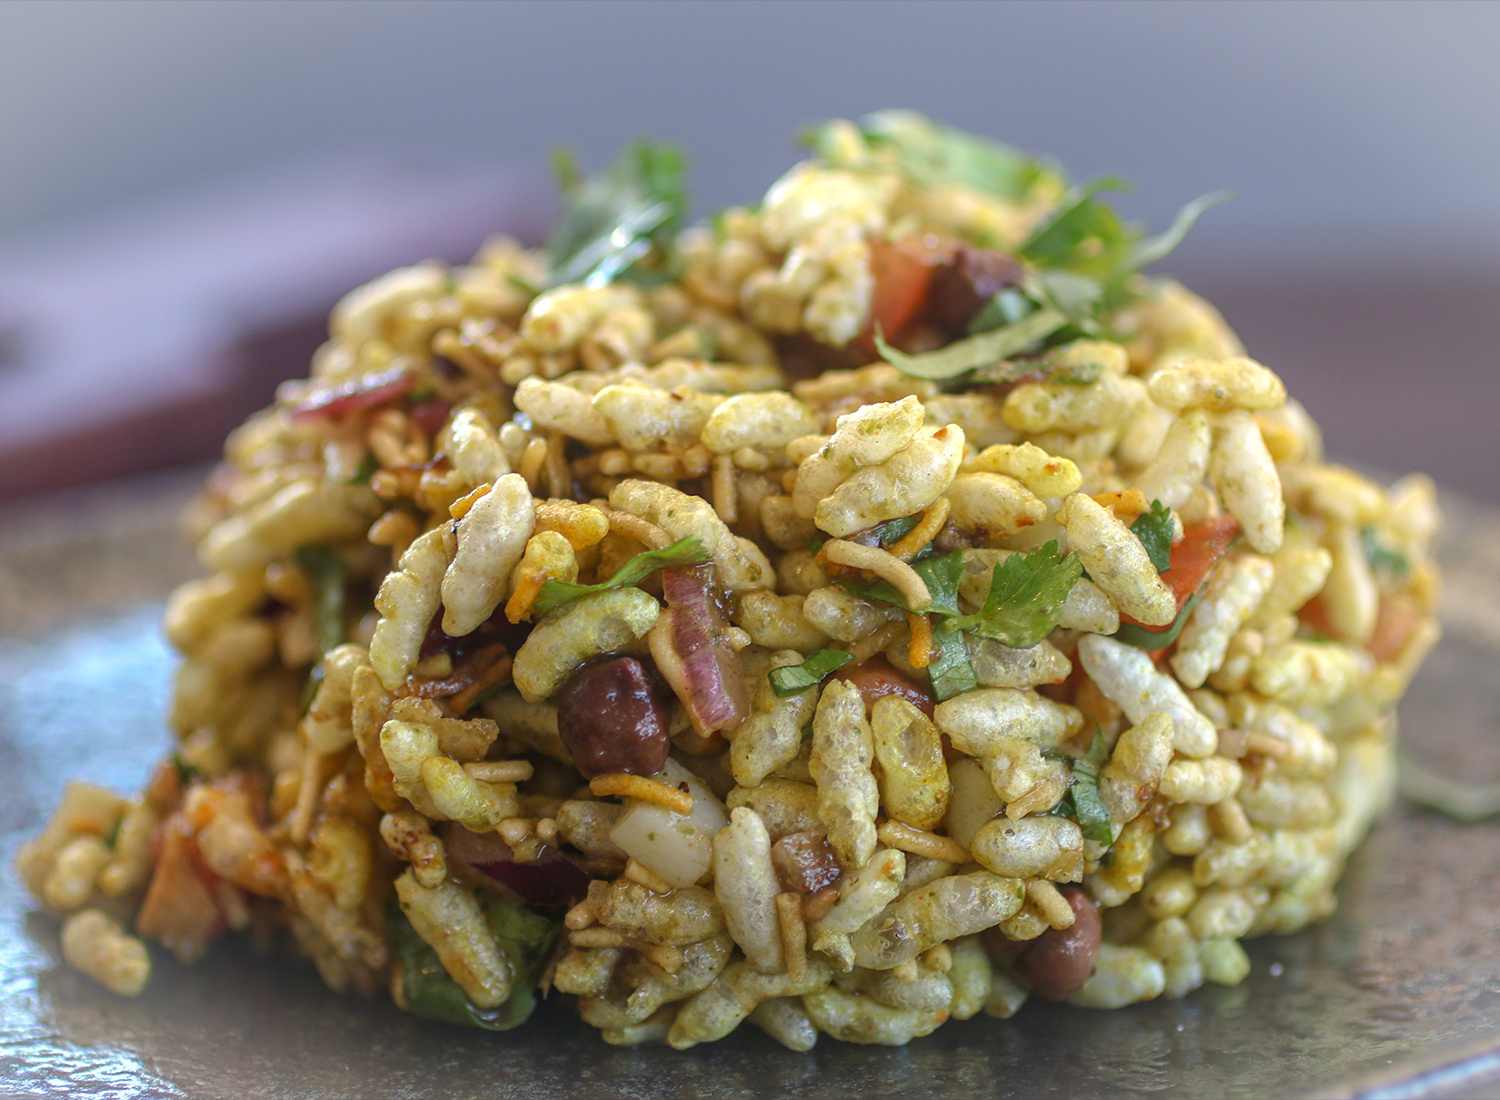 Bhelpuri from the Indian Street Food menu at Bibi's Burger Bar in Santa Rosa. Heather Irwin/PD